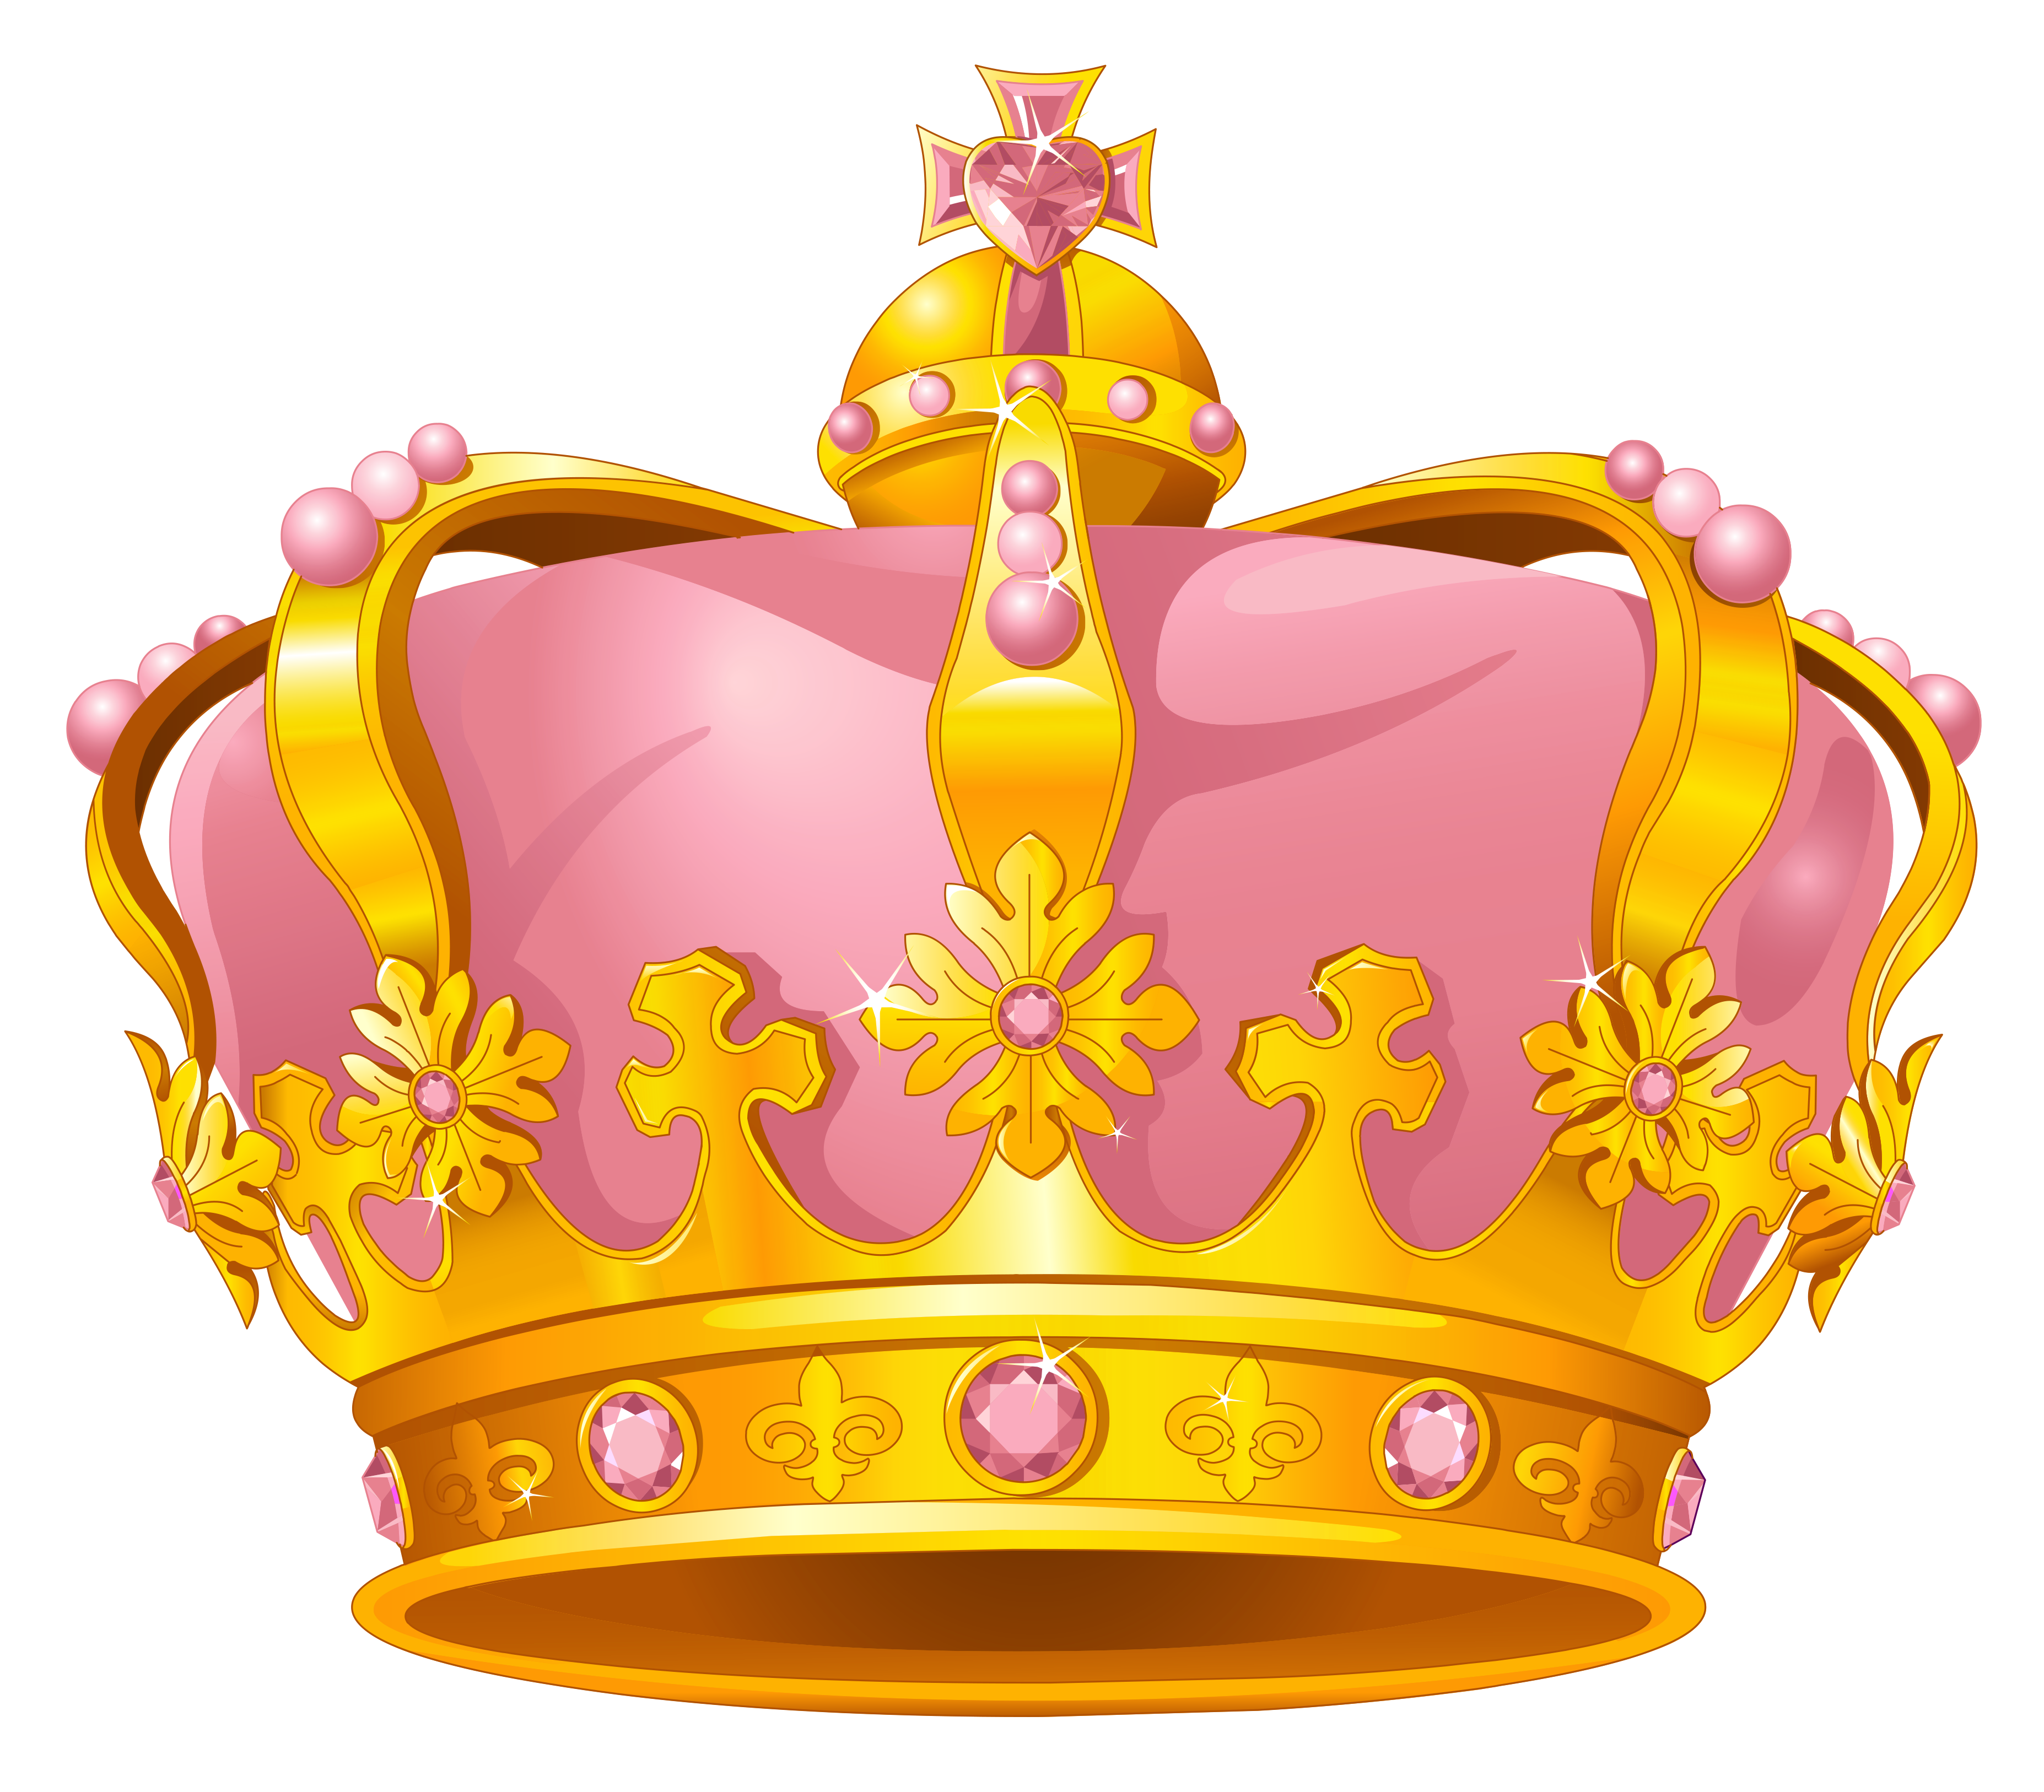 Pink crown clipart - photo#21